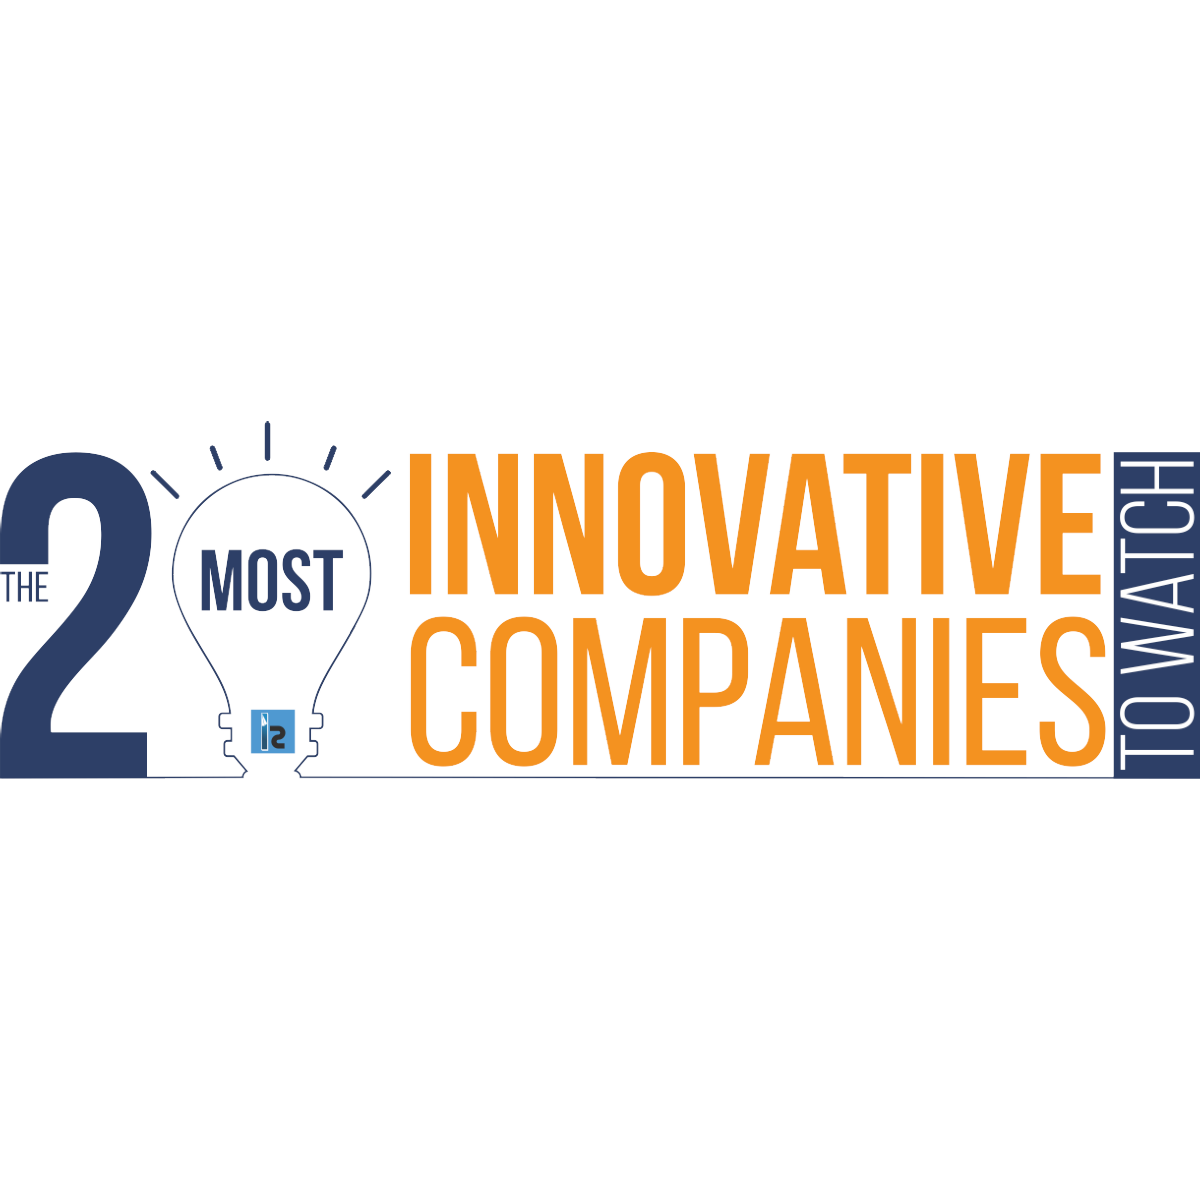 20 Most Innovative Companies